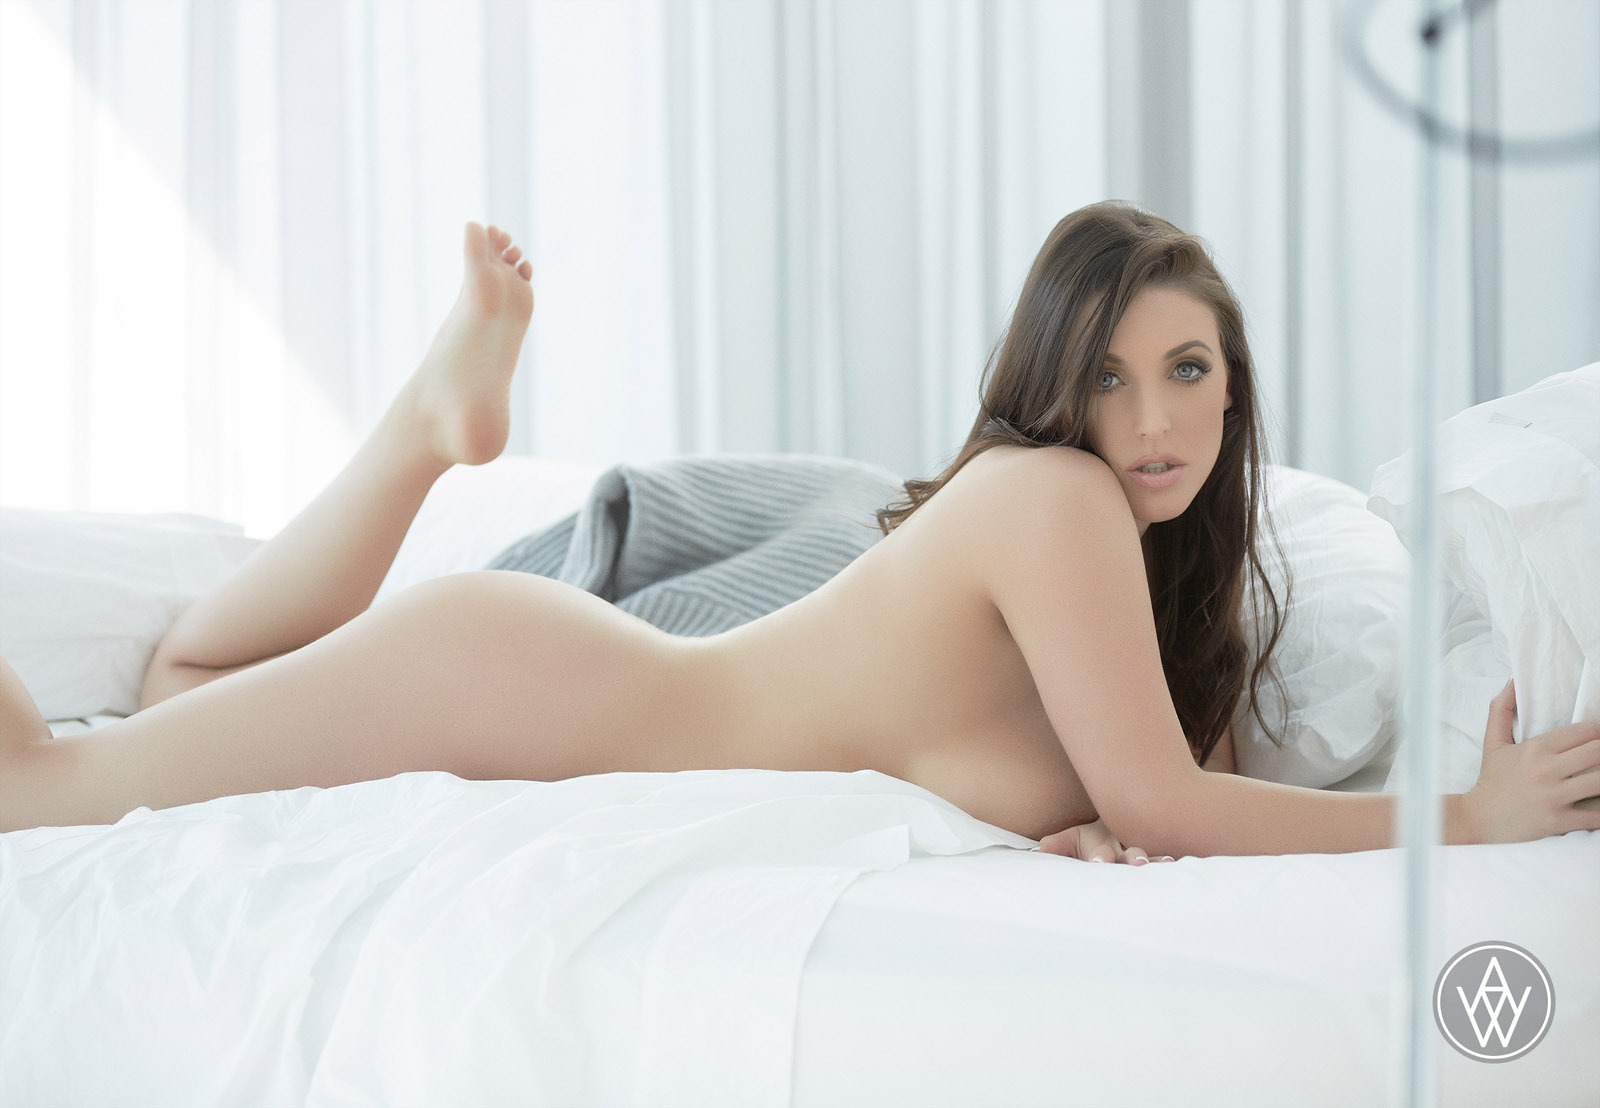 Can say angela white nude would eat